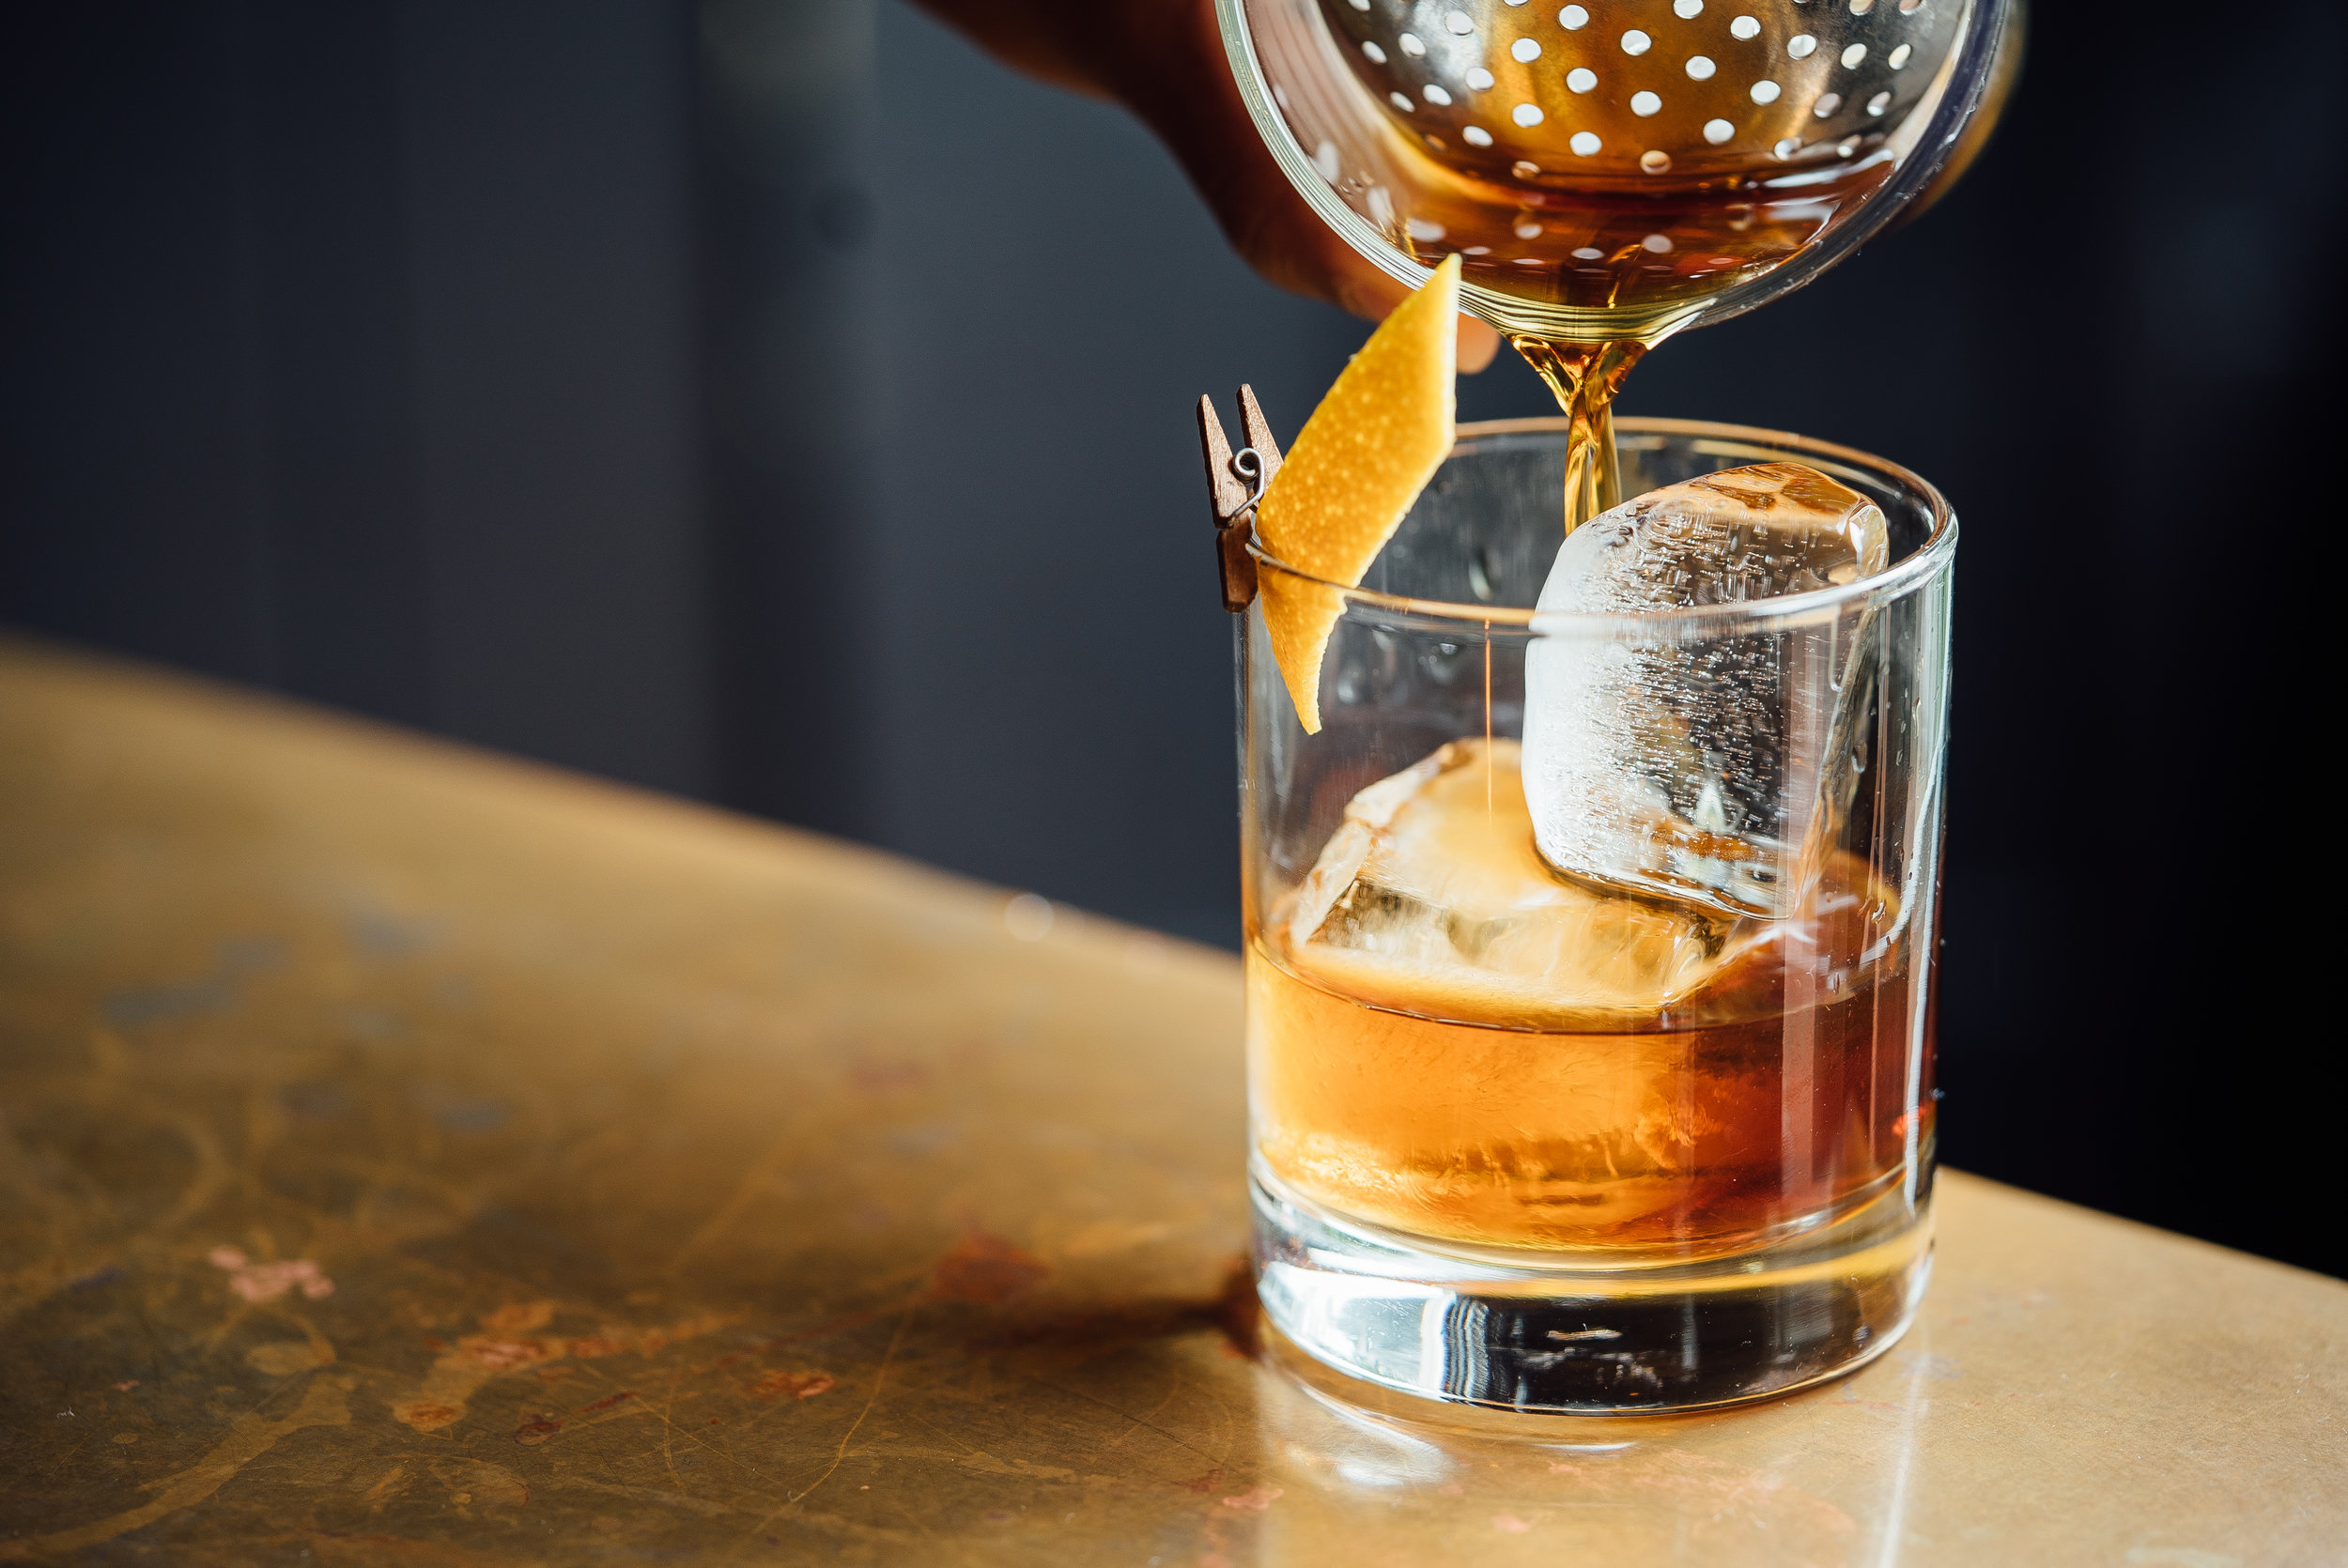 Storied Whiskey Cocktail - Pour a glass of your favorite bourbon or rye whiskey. Drop one cube, rich with tart cherry and orange zest, in your glass. Muddle, or let sugar dissolve as you savor.